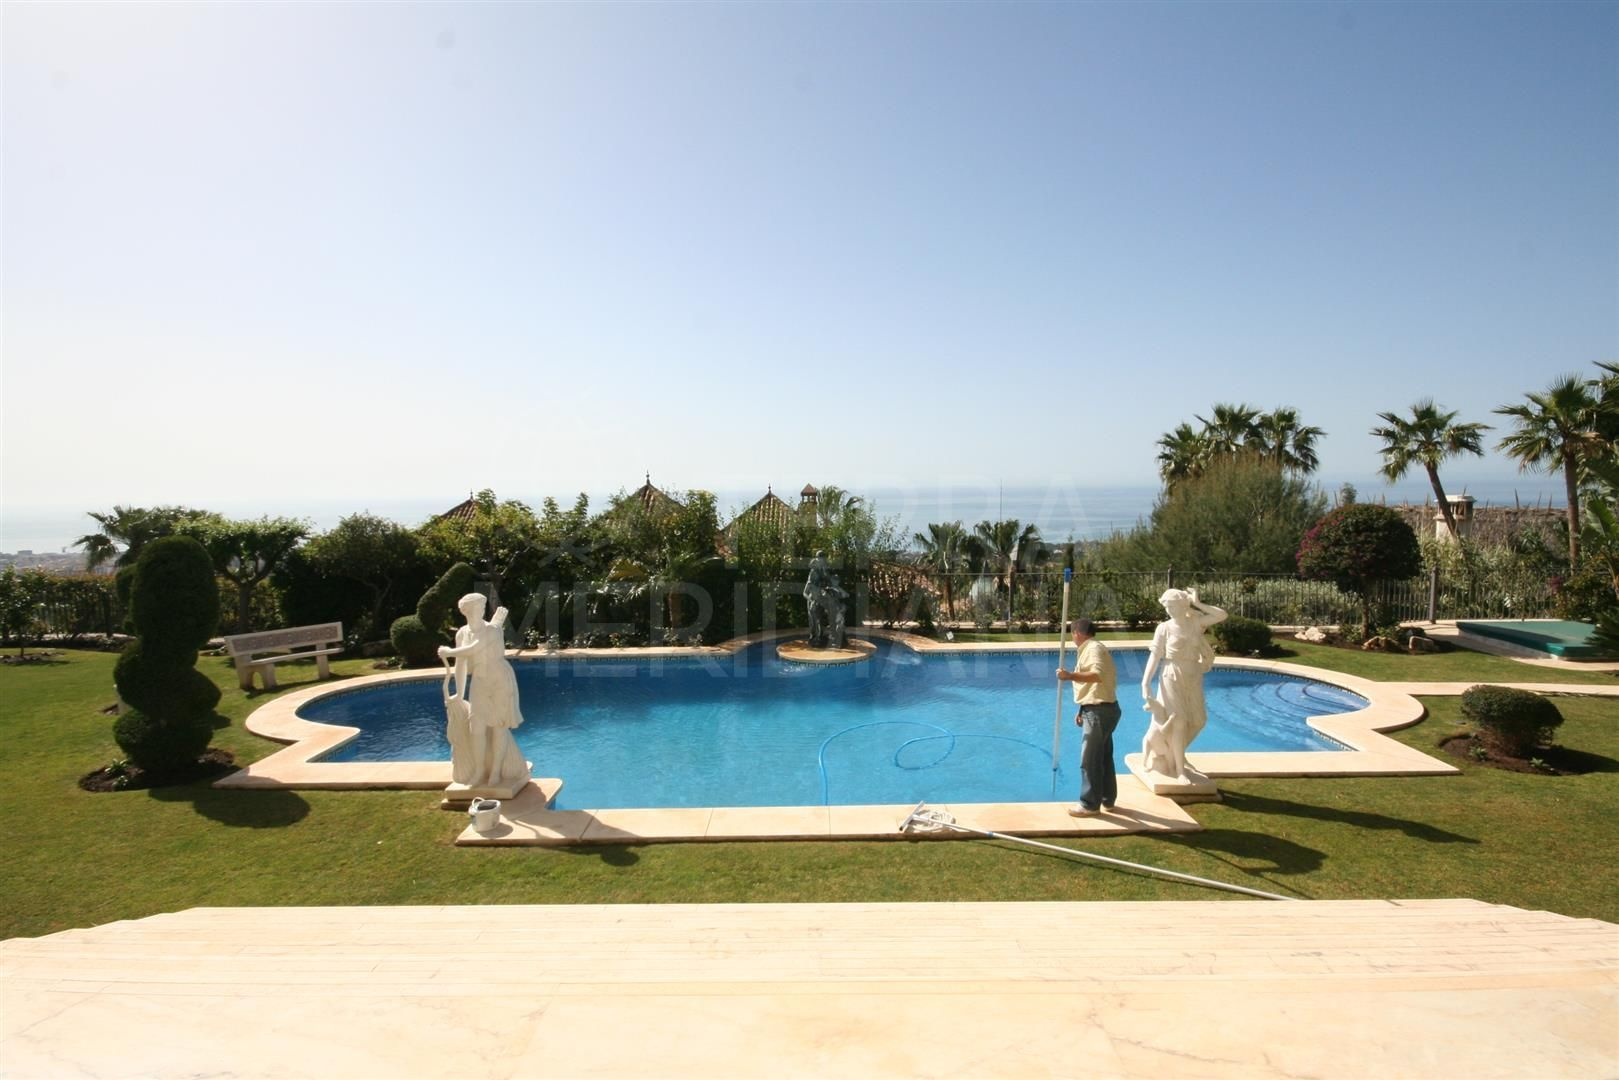 Spacious luxury 5 bedroom villa with imposing views for sale in Sierra Blanca, Marbella Golden Mile